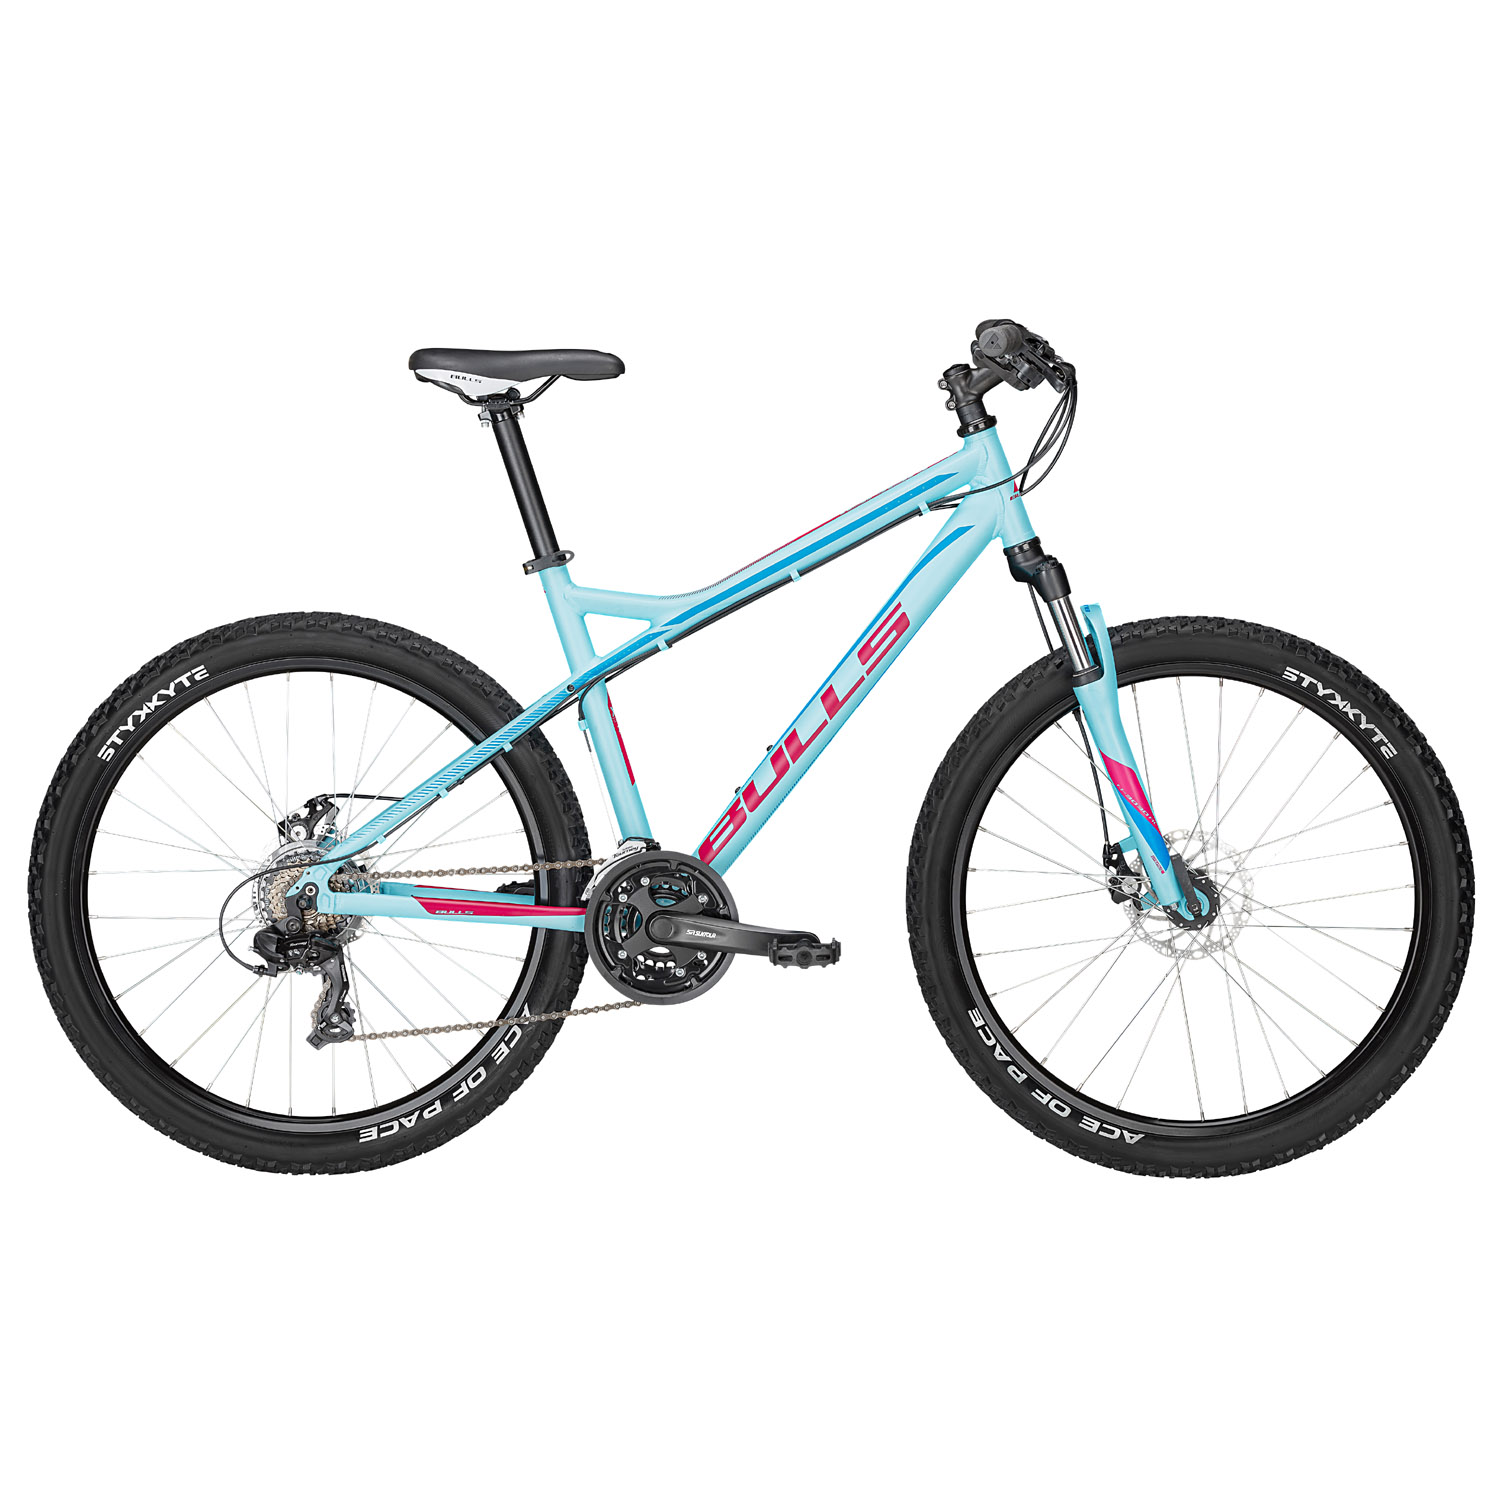 bulls nandi mountainbike 26 zoll damen 41 cm light blue. Black Bedroom Furniture Sets. Home Design Ideas